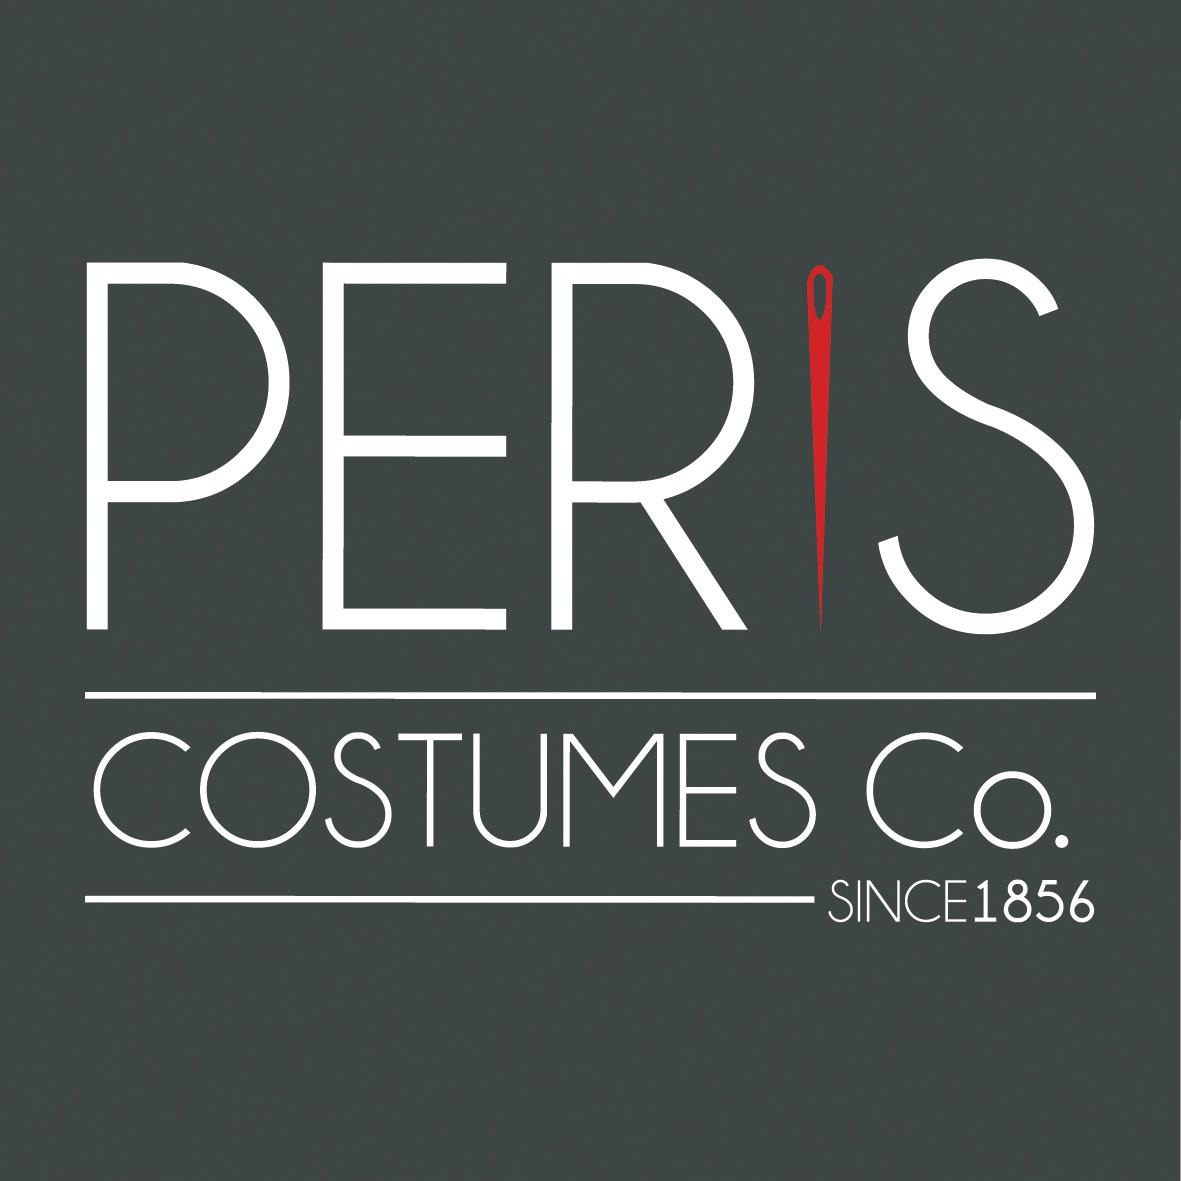 Photo in use by Peris Costumes Co